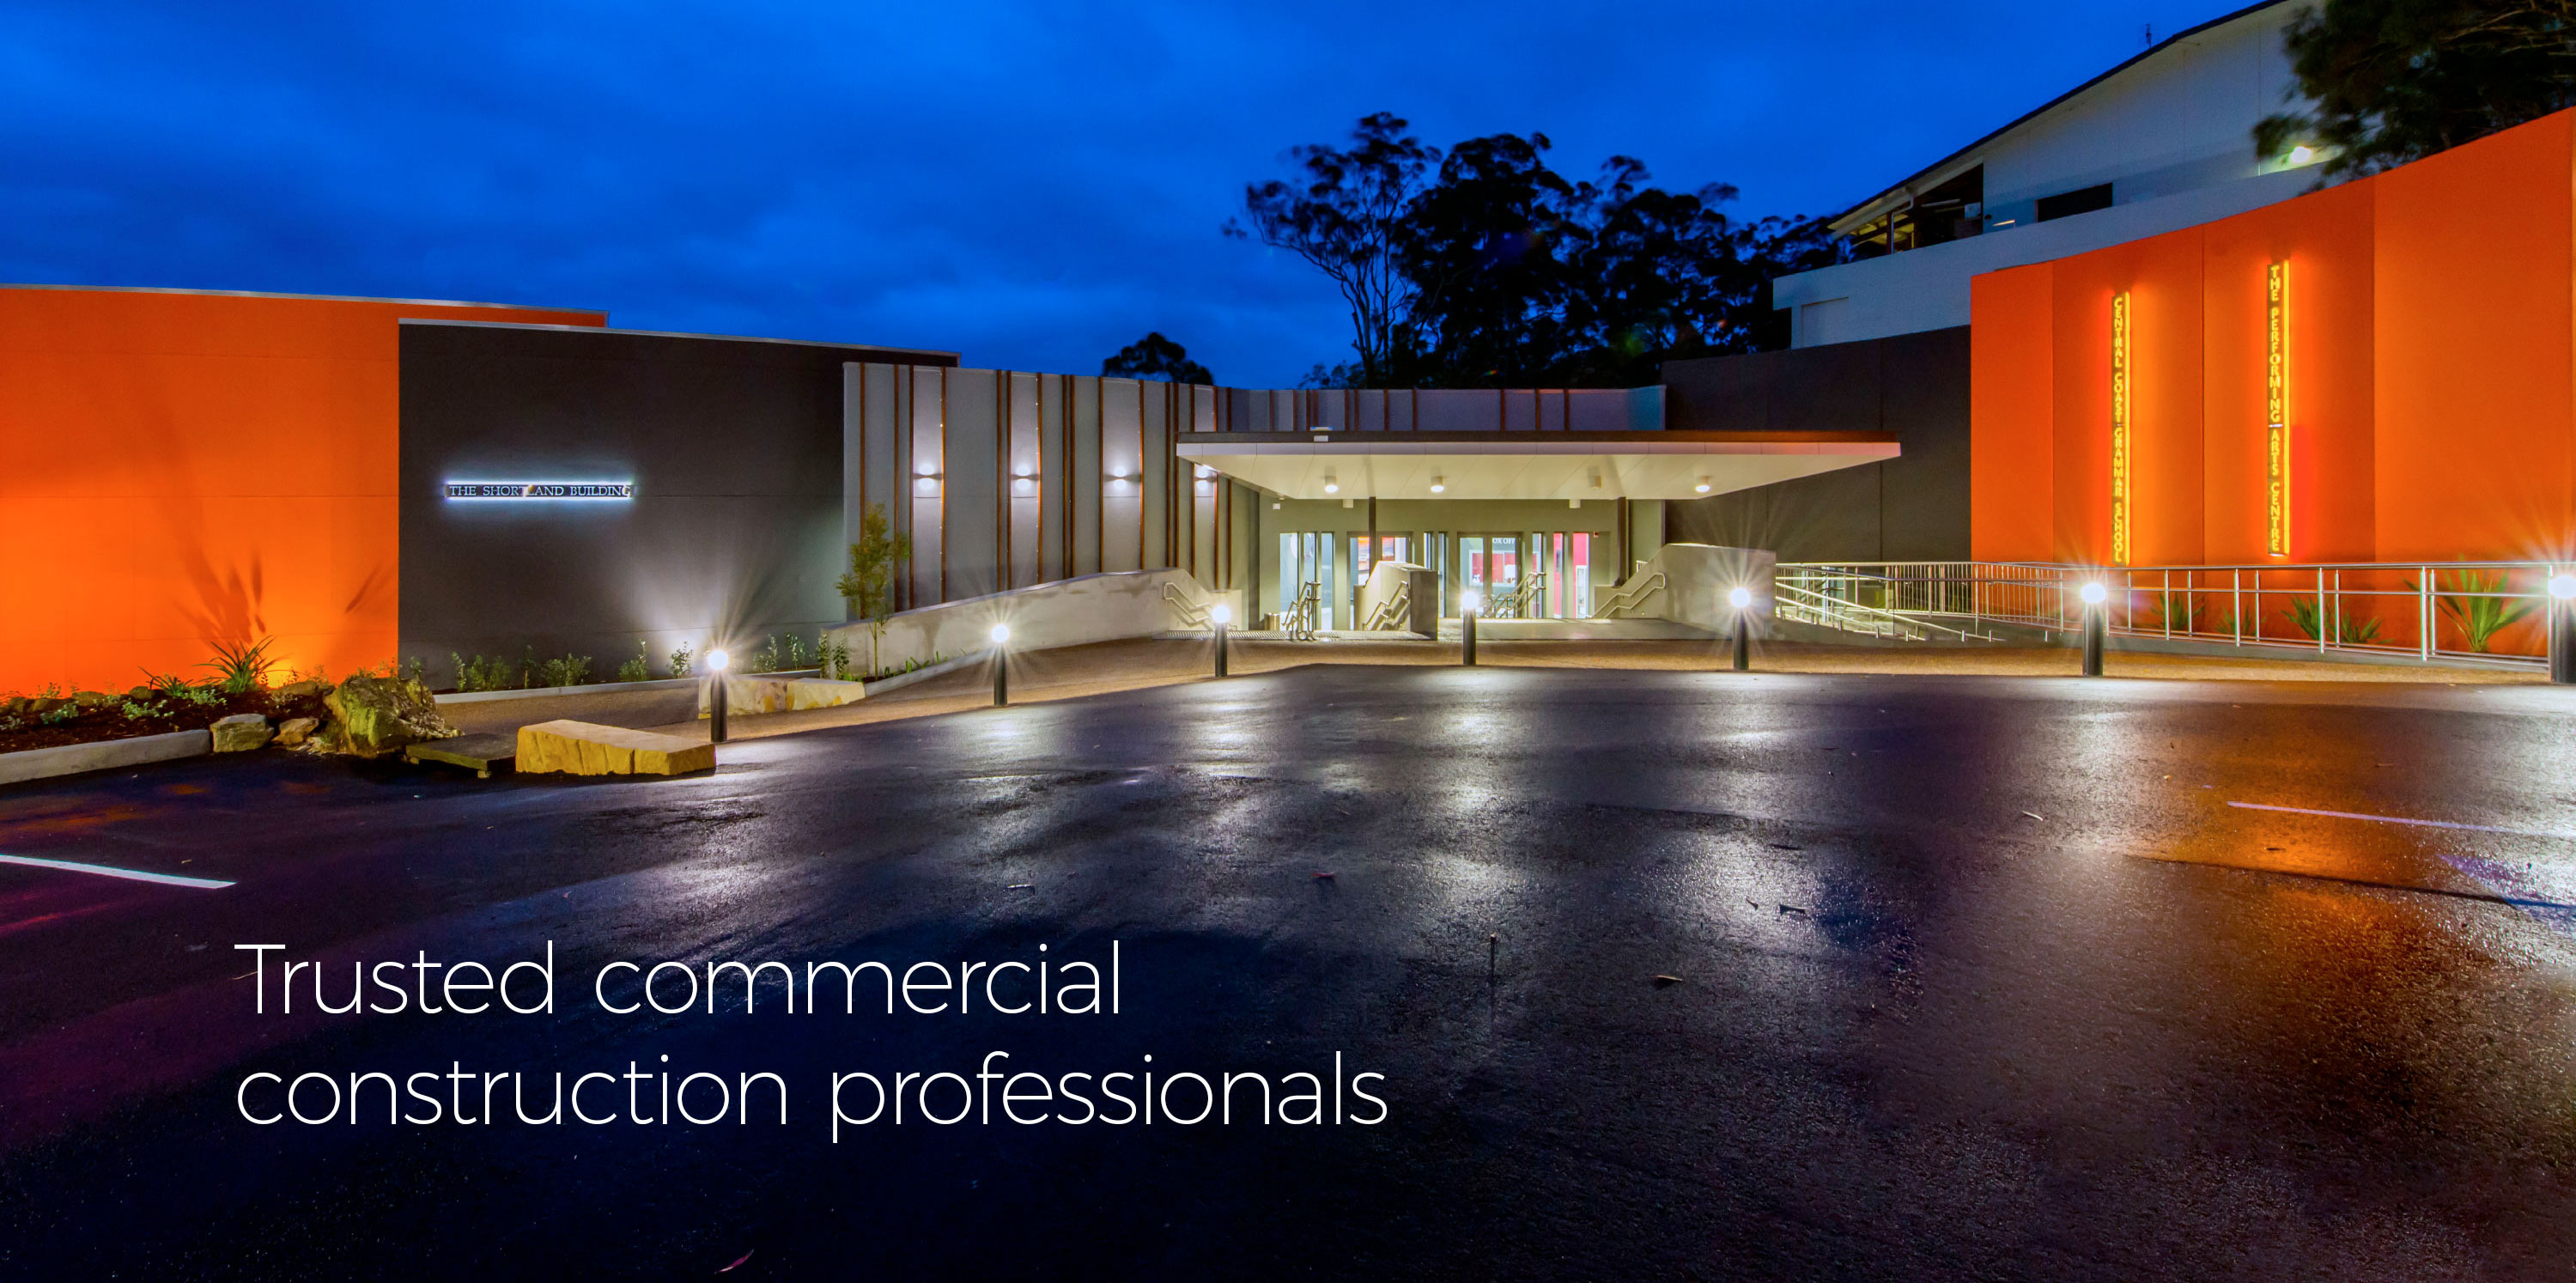 Trusted commercial construction professionals